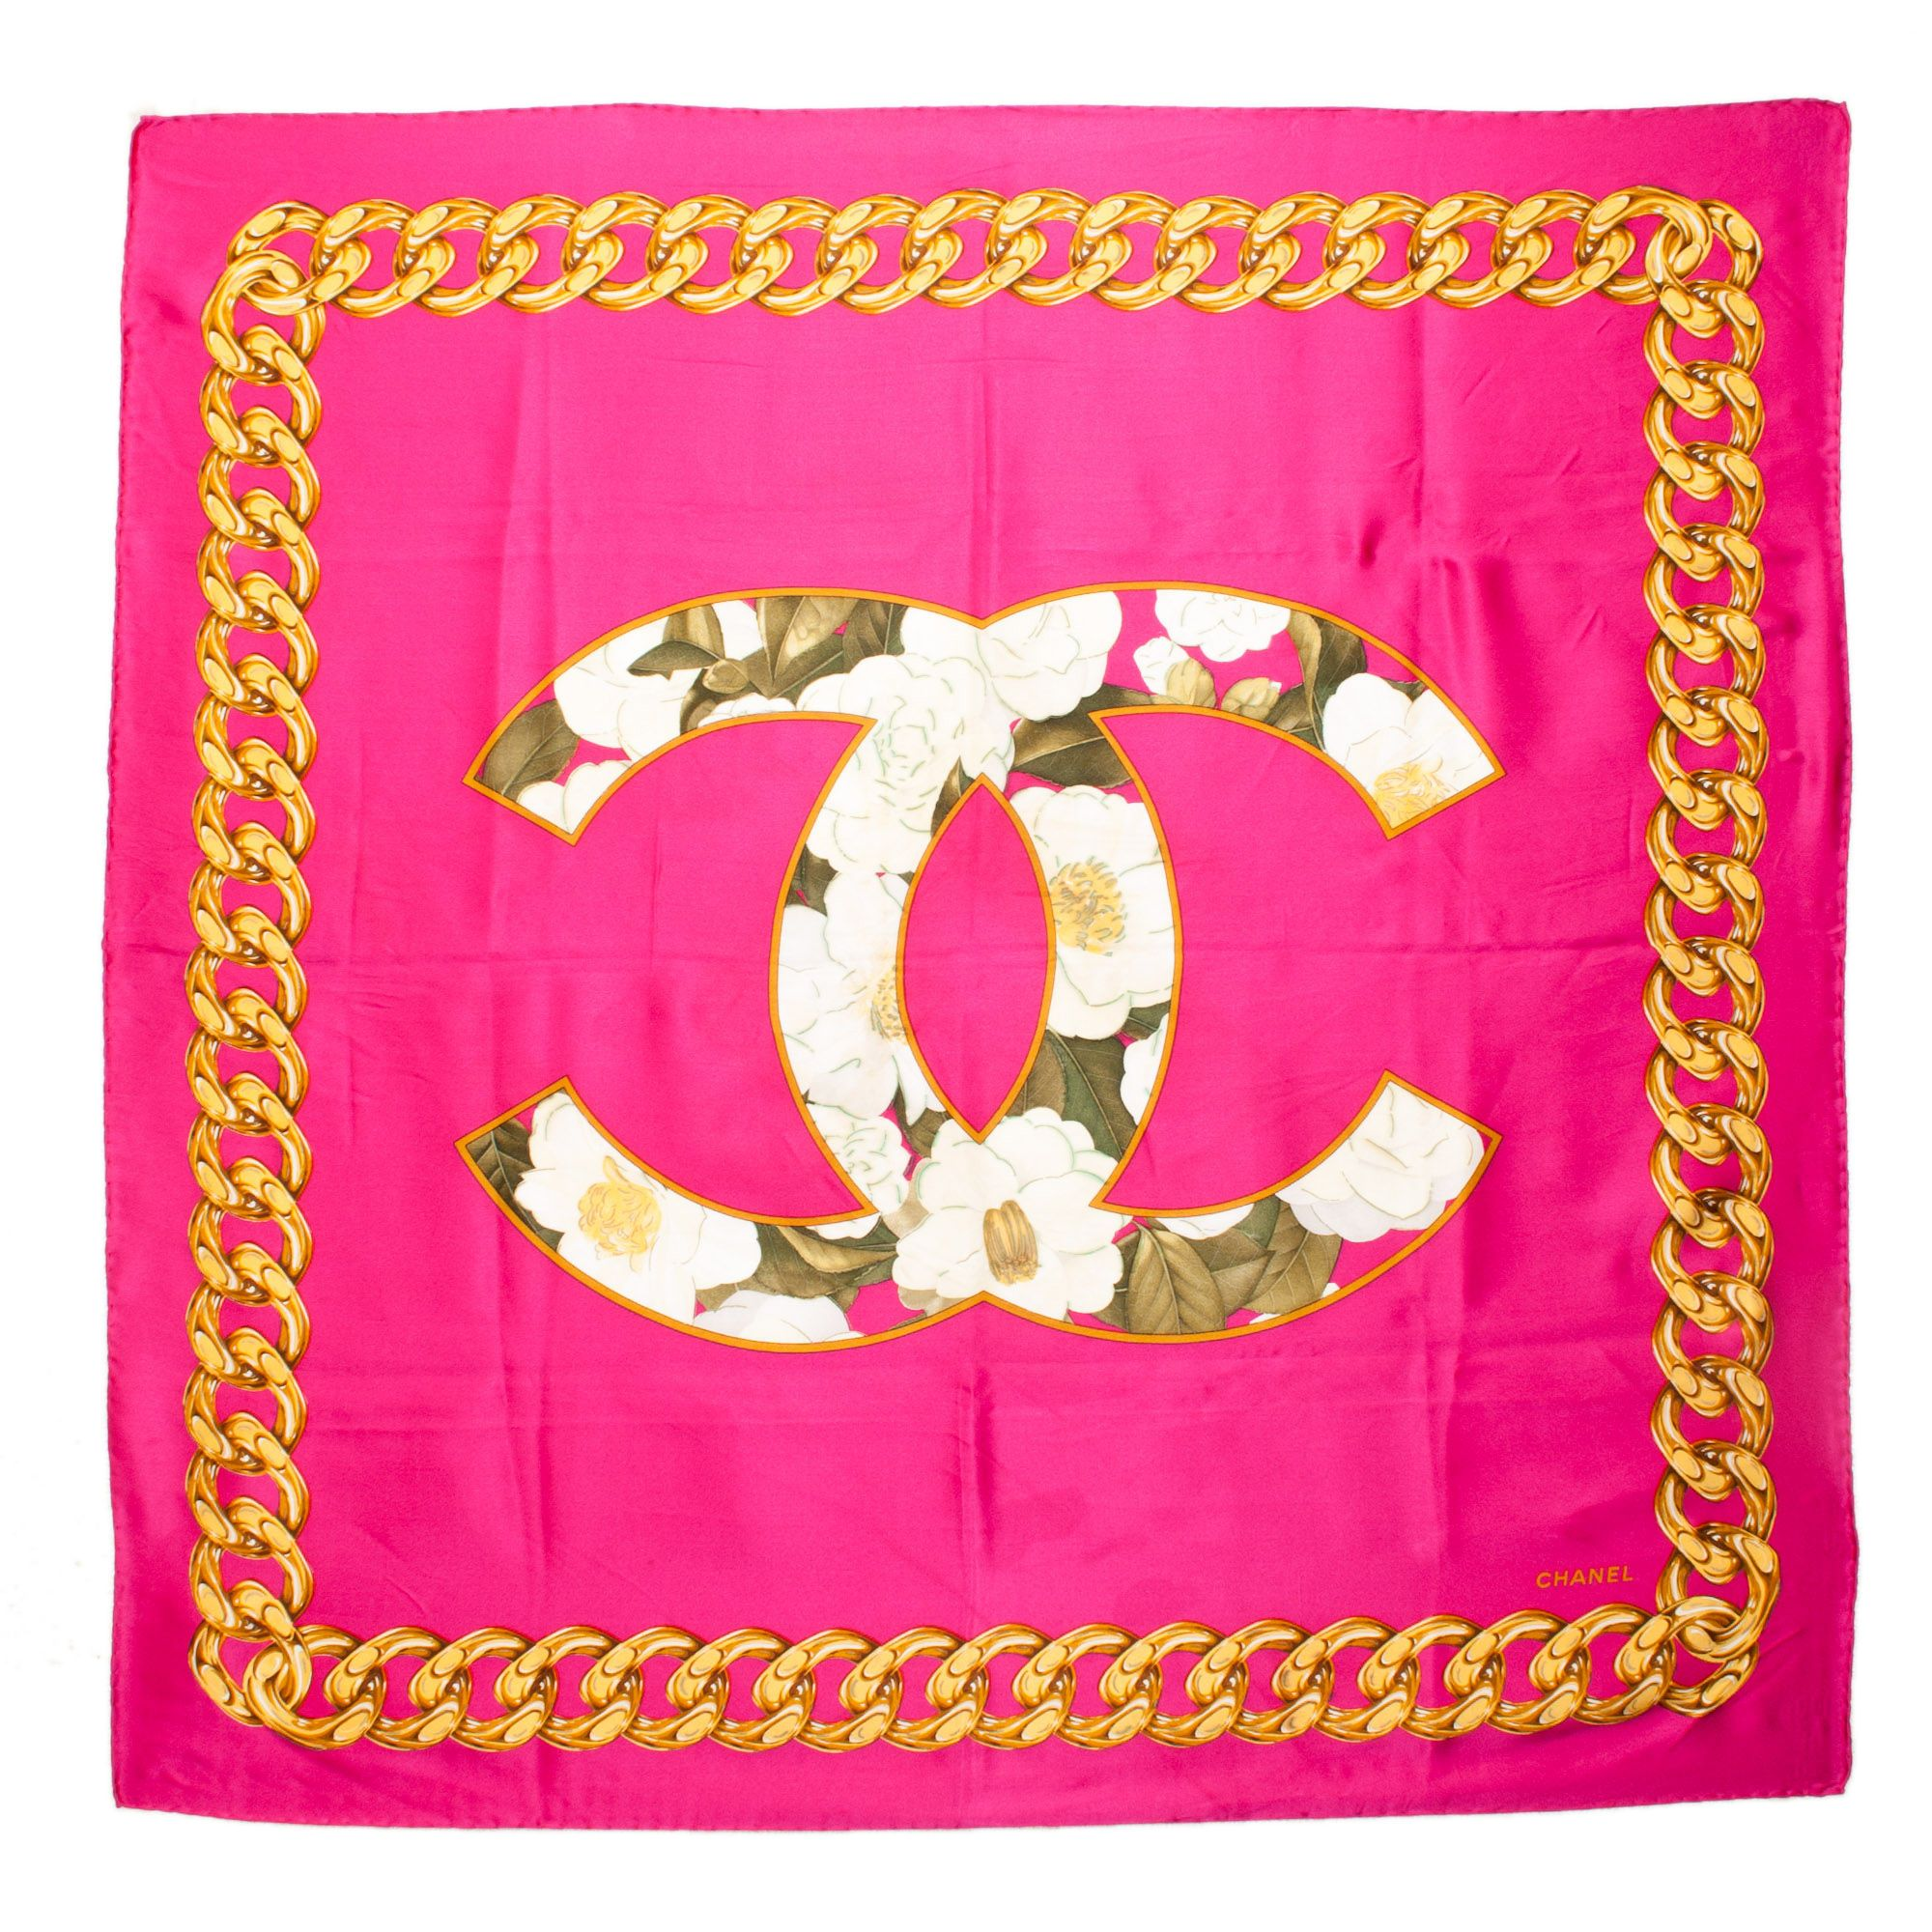 4404d898712 Chanel Scarf - very cool and vintage